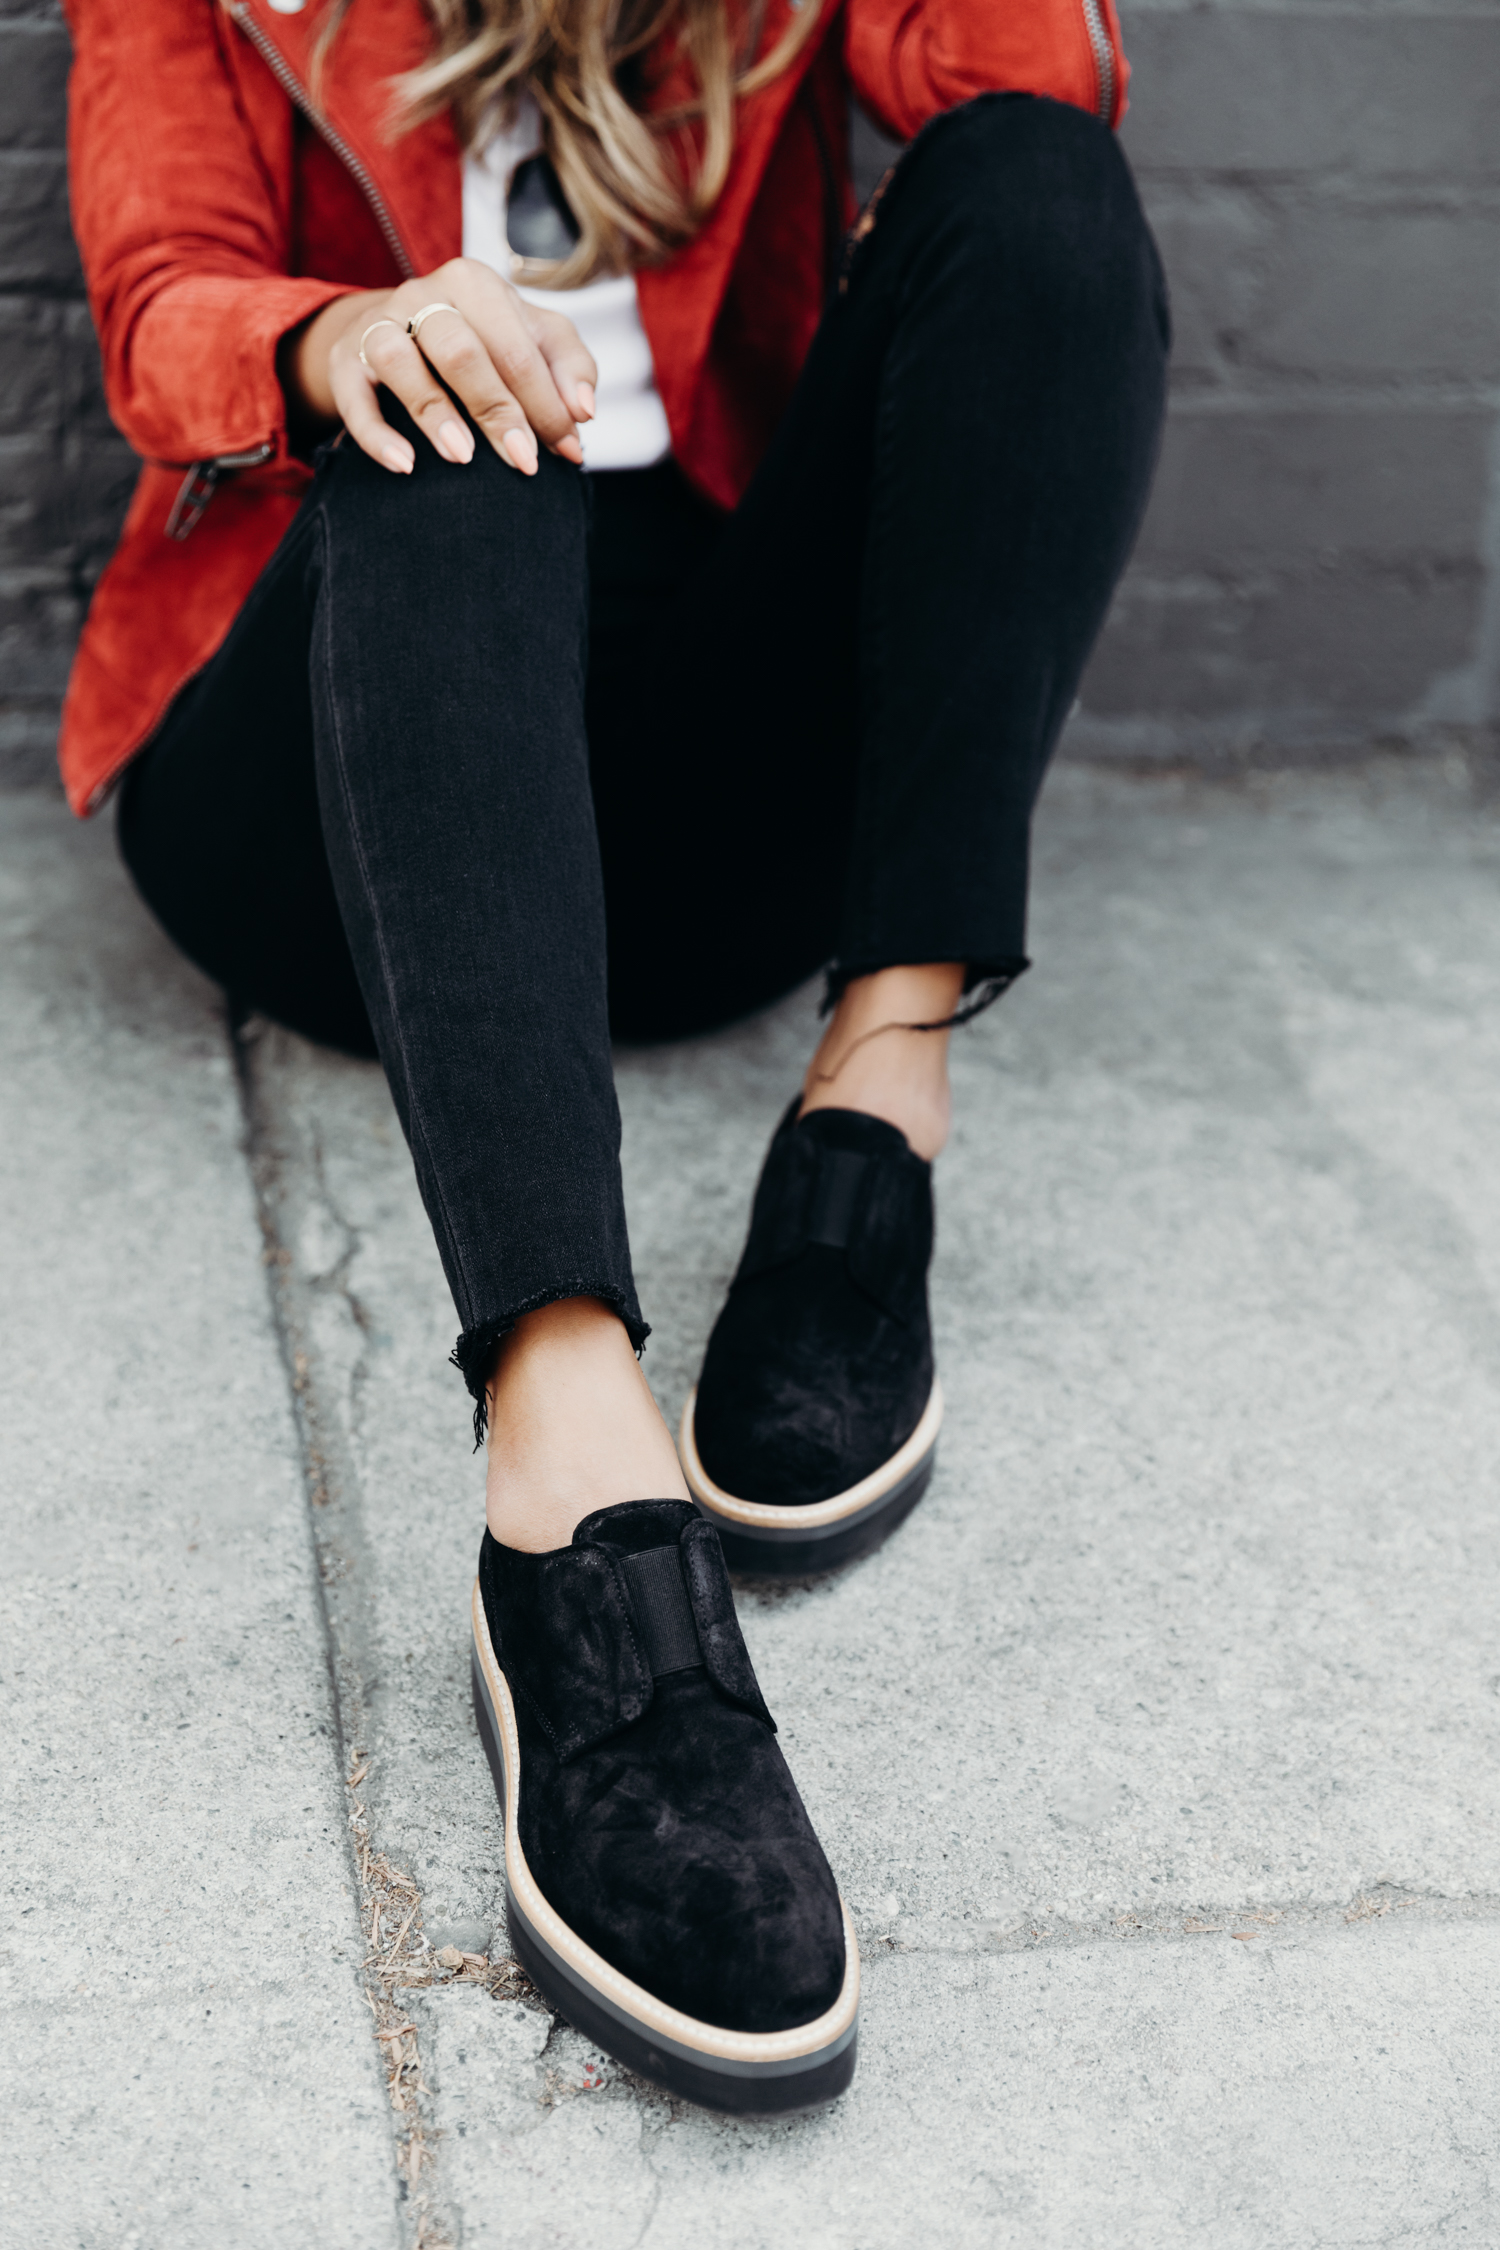 BLANKNYC jacket and VINCE platforms, Fall outfit inspo